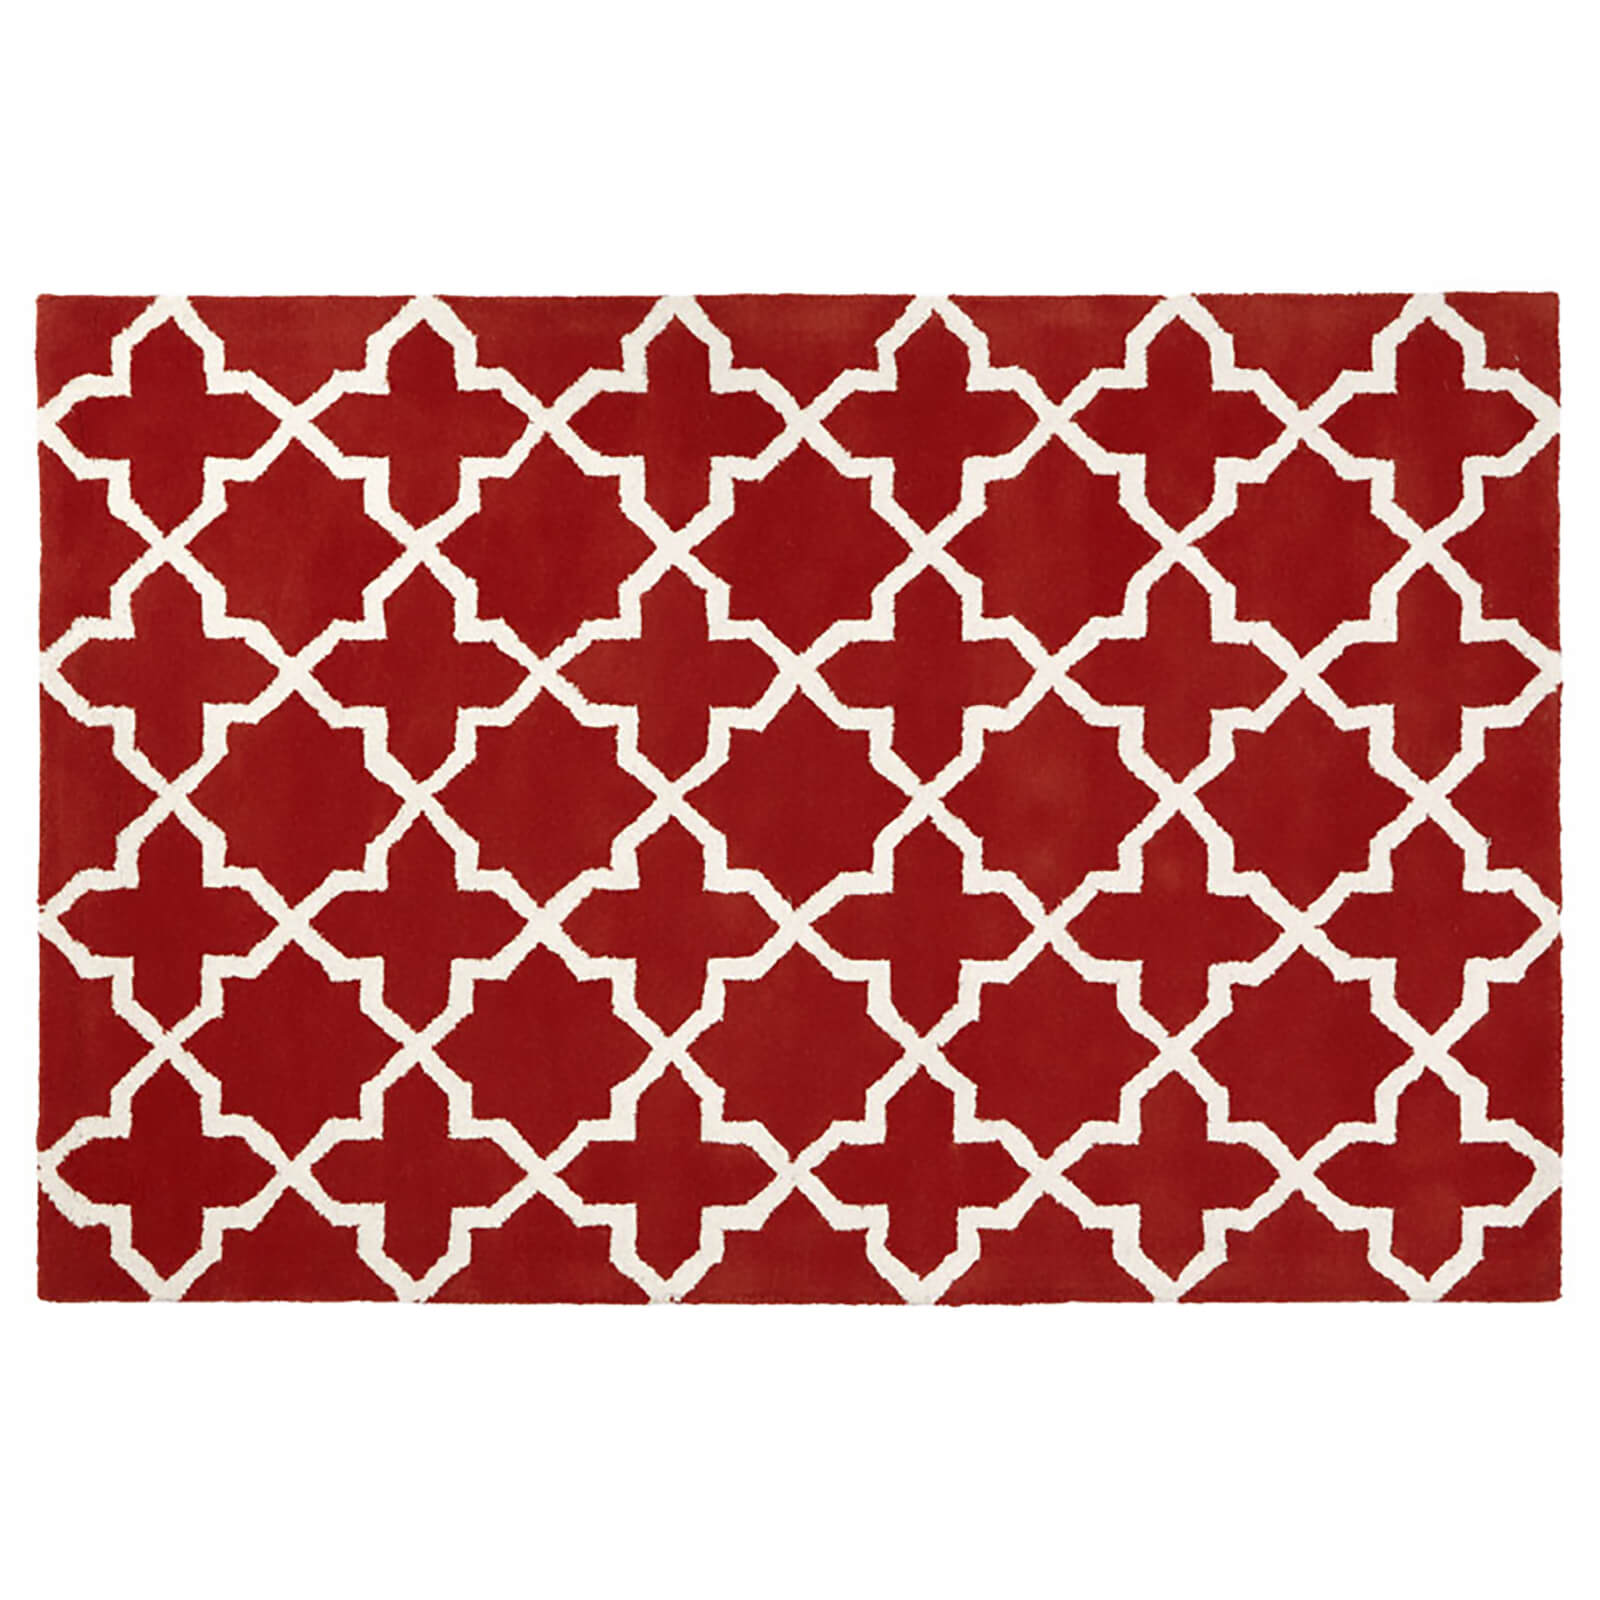 Fifty Five South Kensington Townhouse Cotton/Wool Mix Rug - Orange/White